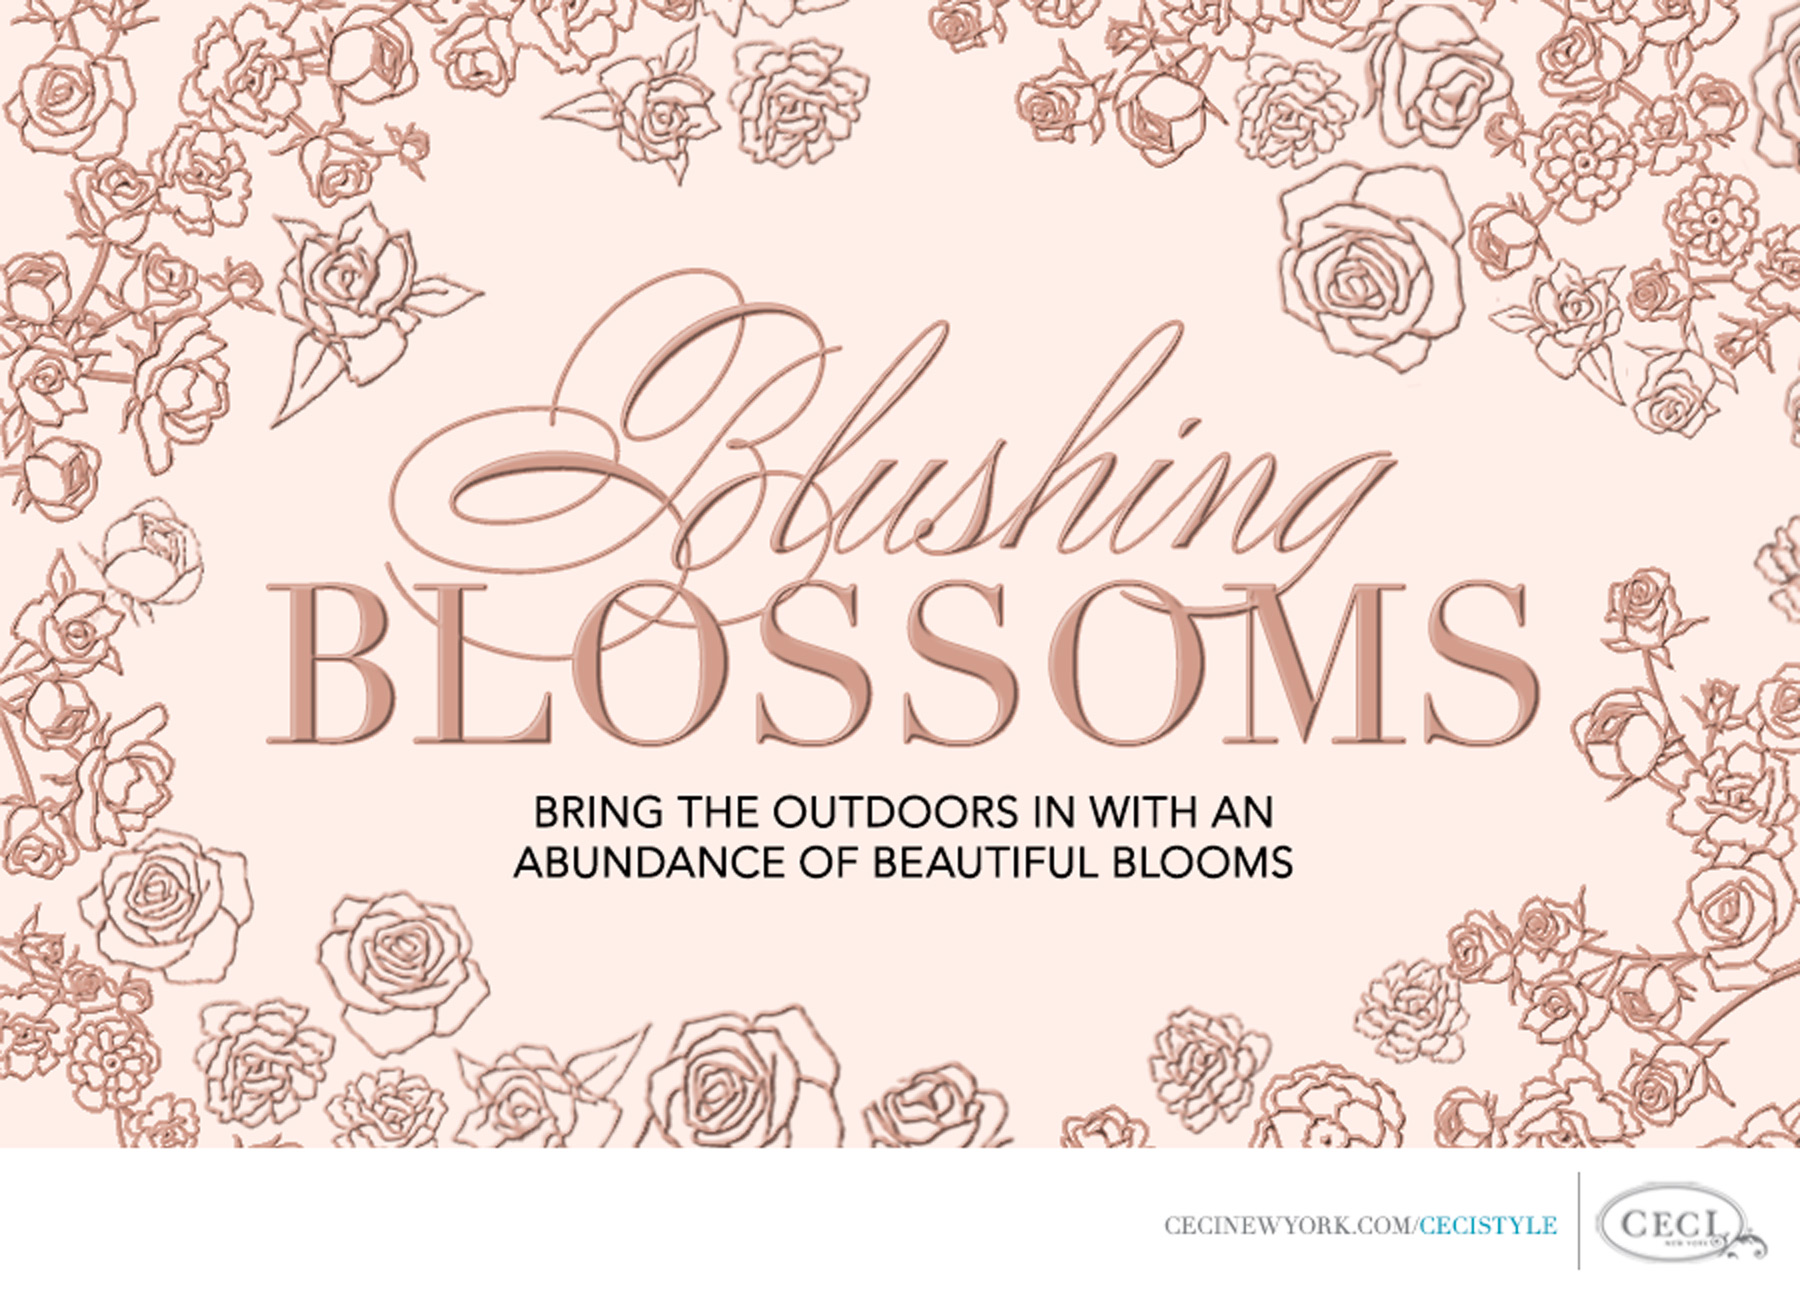 Ceci Johnson of Ceci New York - Blushing Blossoms - Bring the outdoors in with an abundance of beautiful blooms